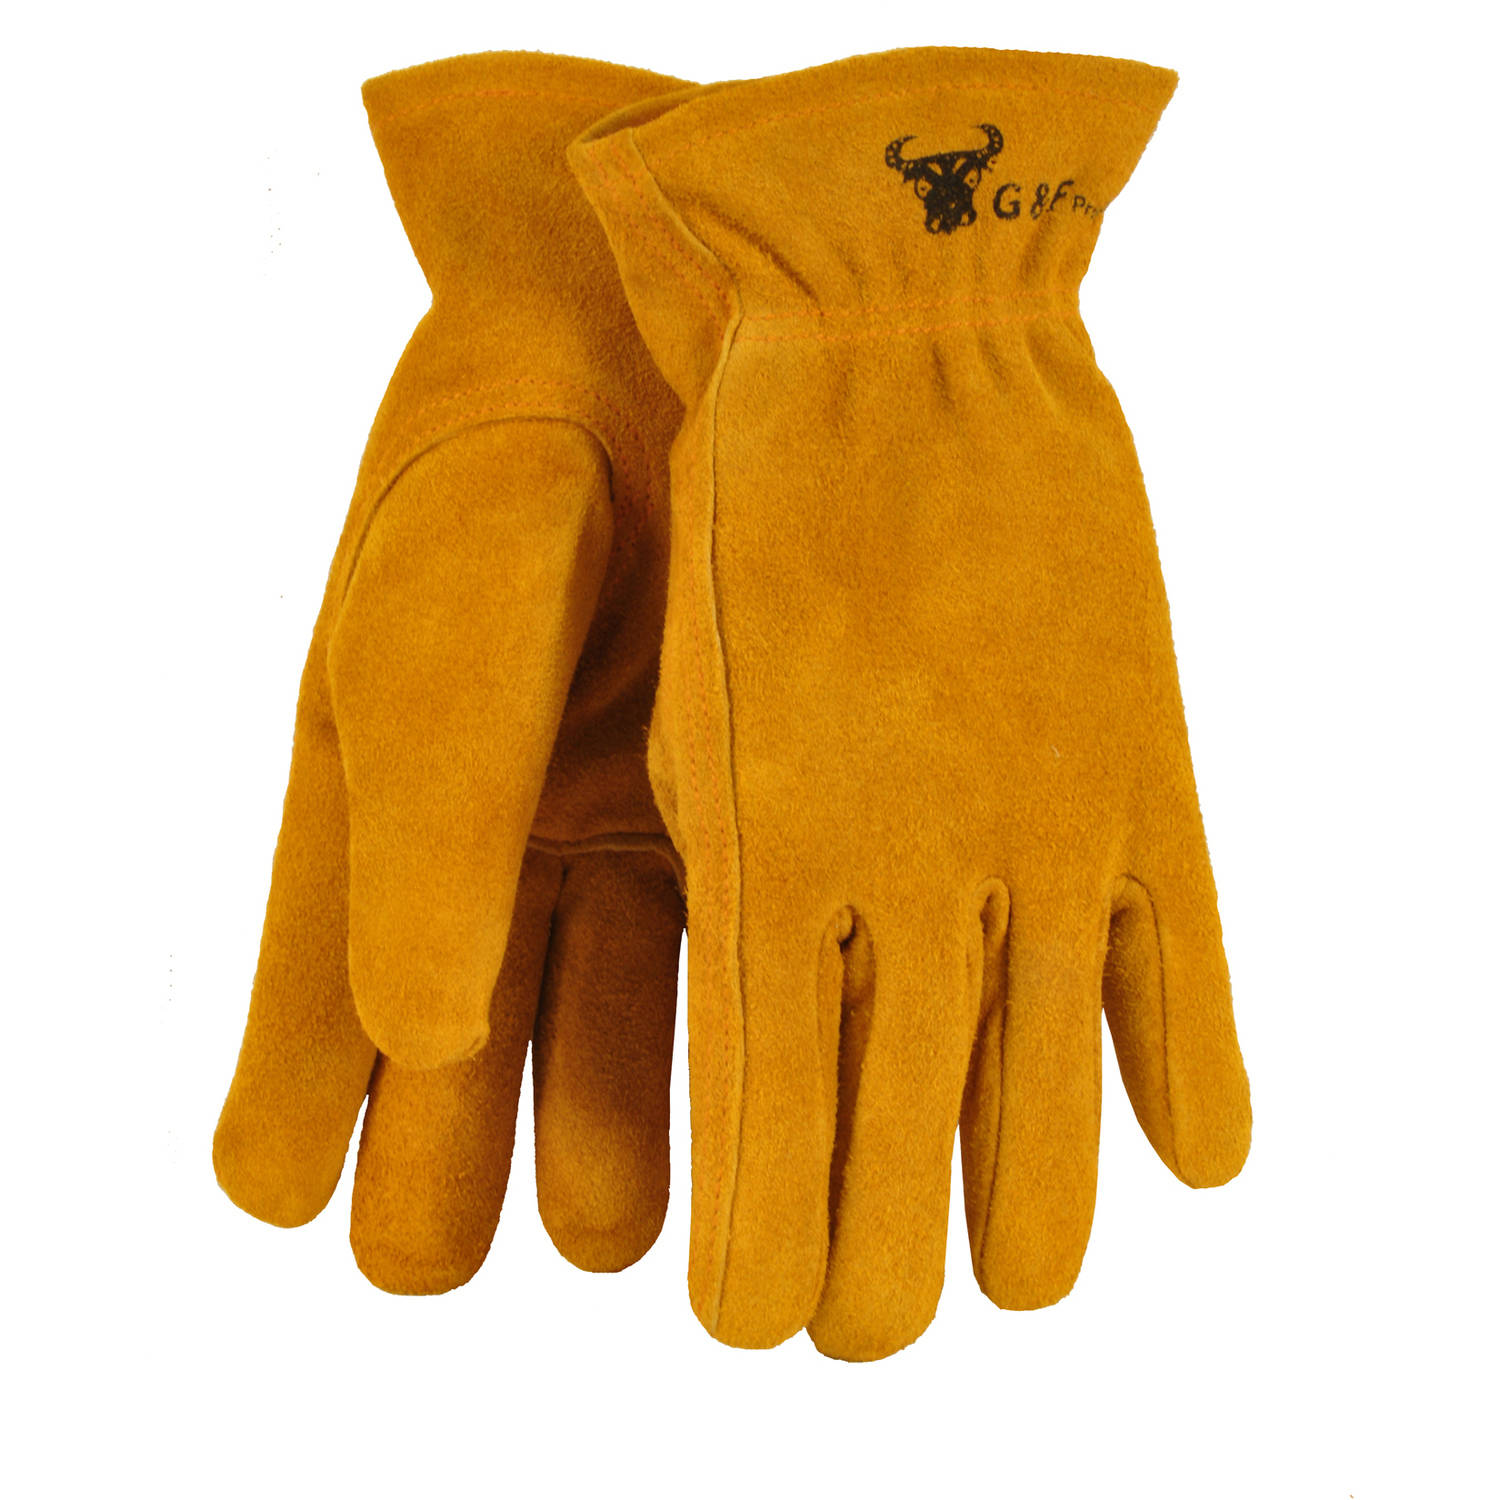 G & F Kids Leather Work Gloves for Ages 4 to 6